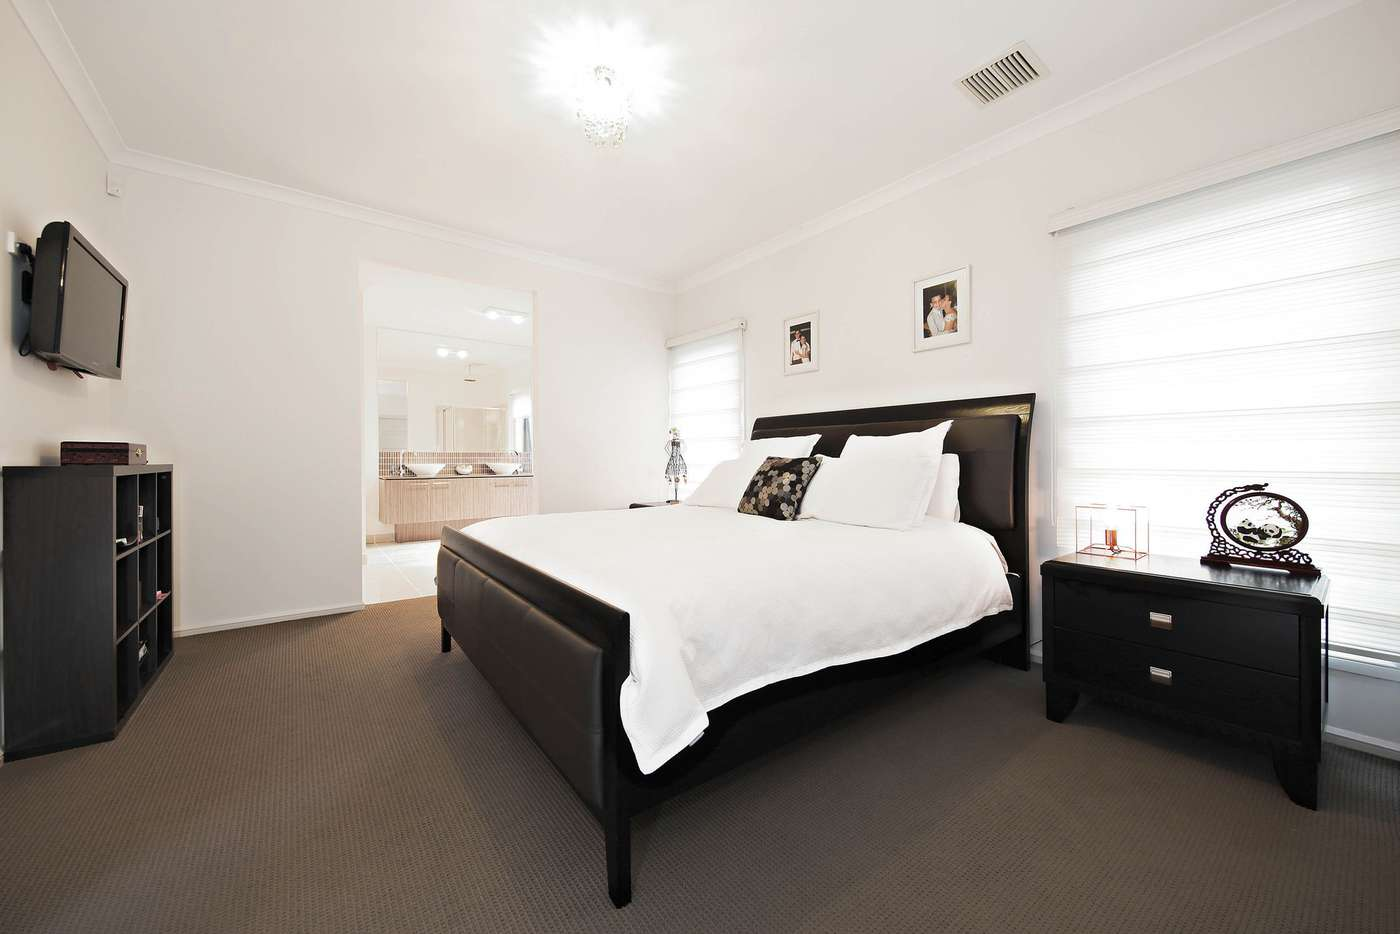 Sixth view of Homely house listing, 12 Marine Parade, Caroline Springs VIC 3023